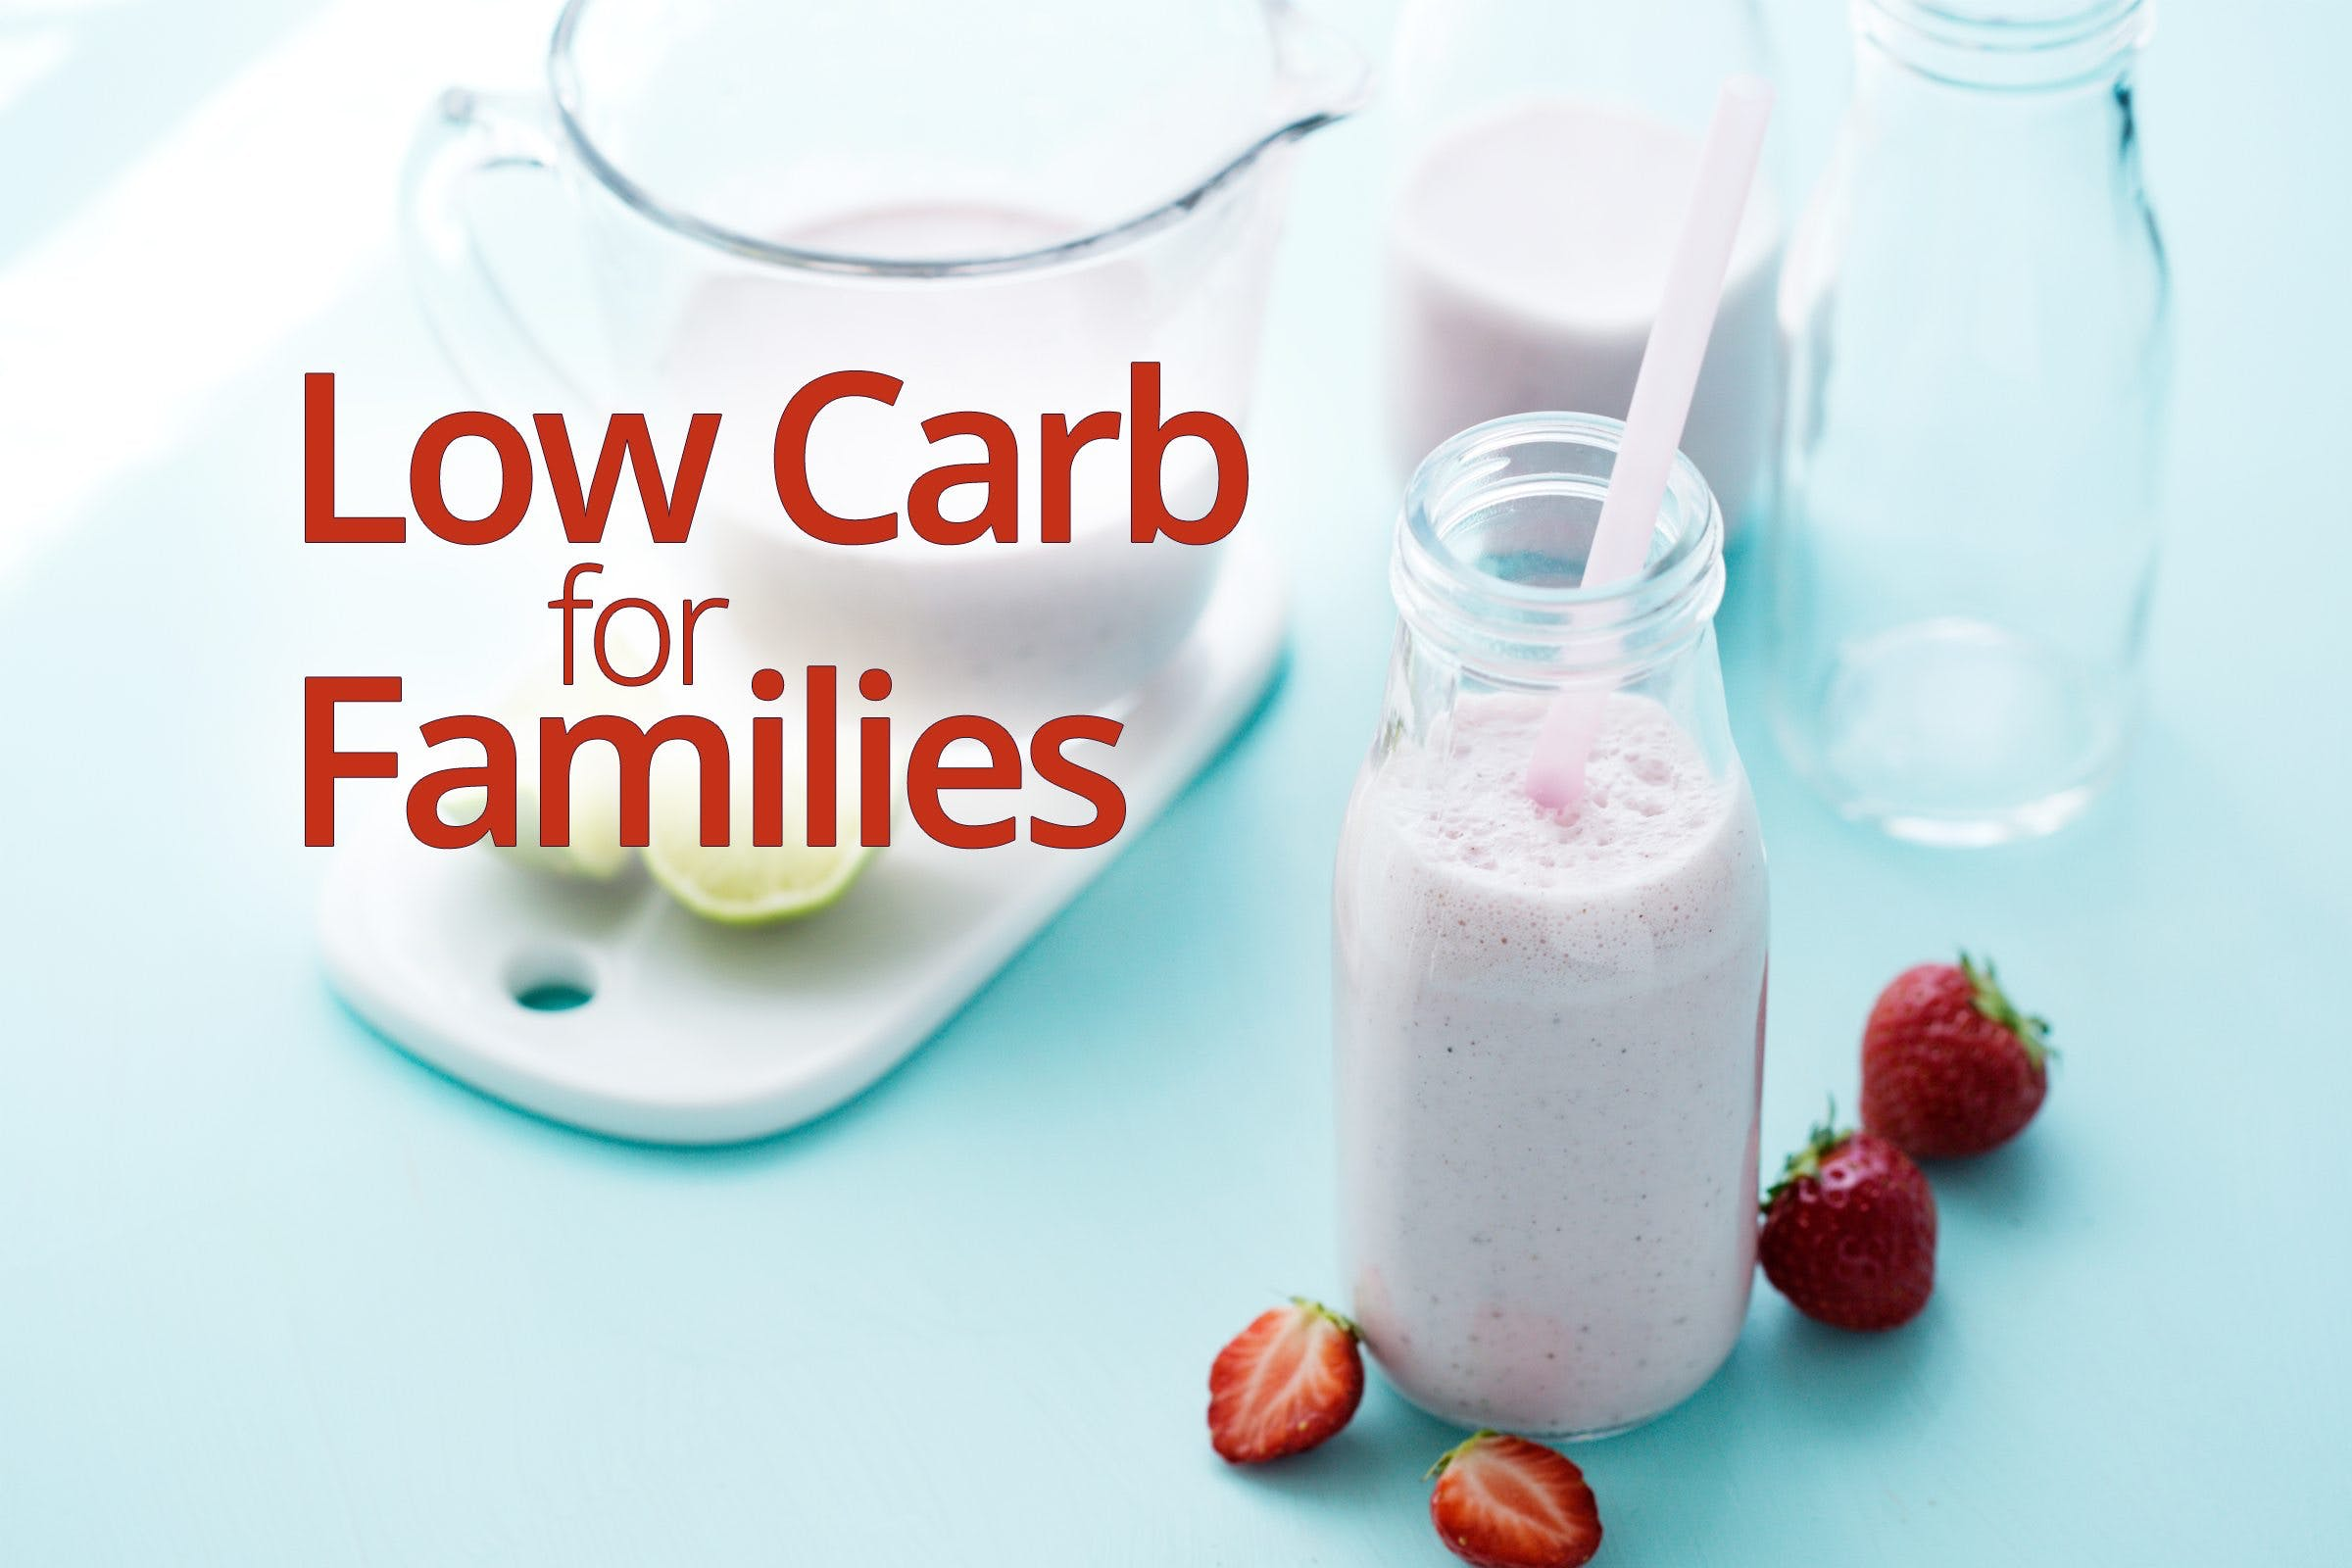 Low Carb for Families